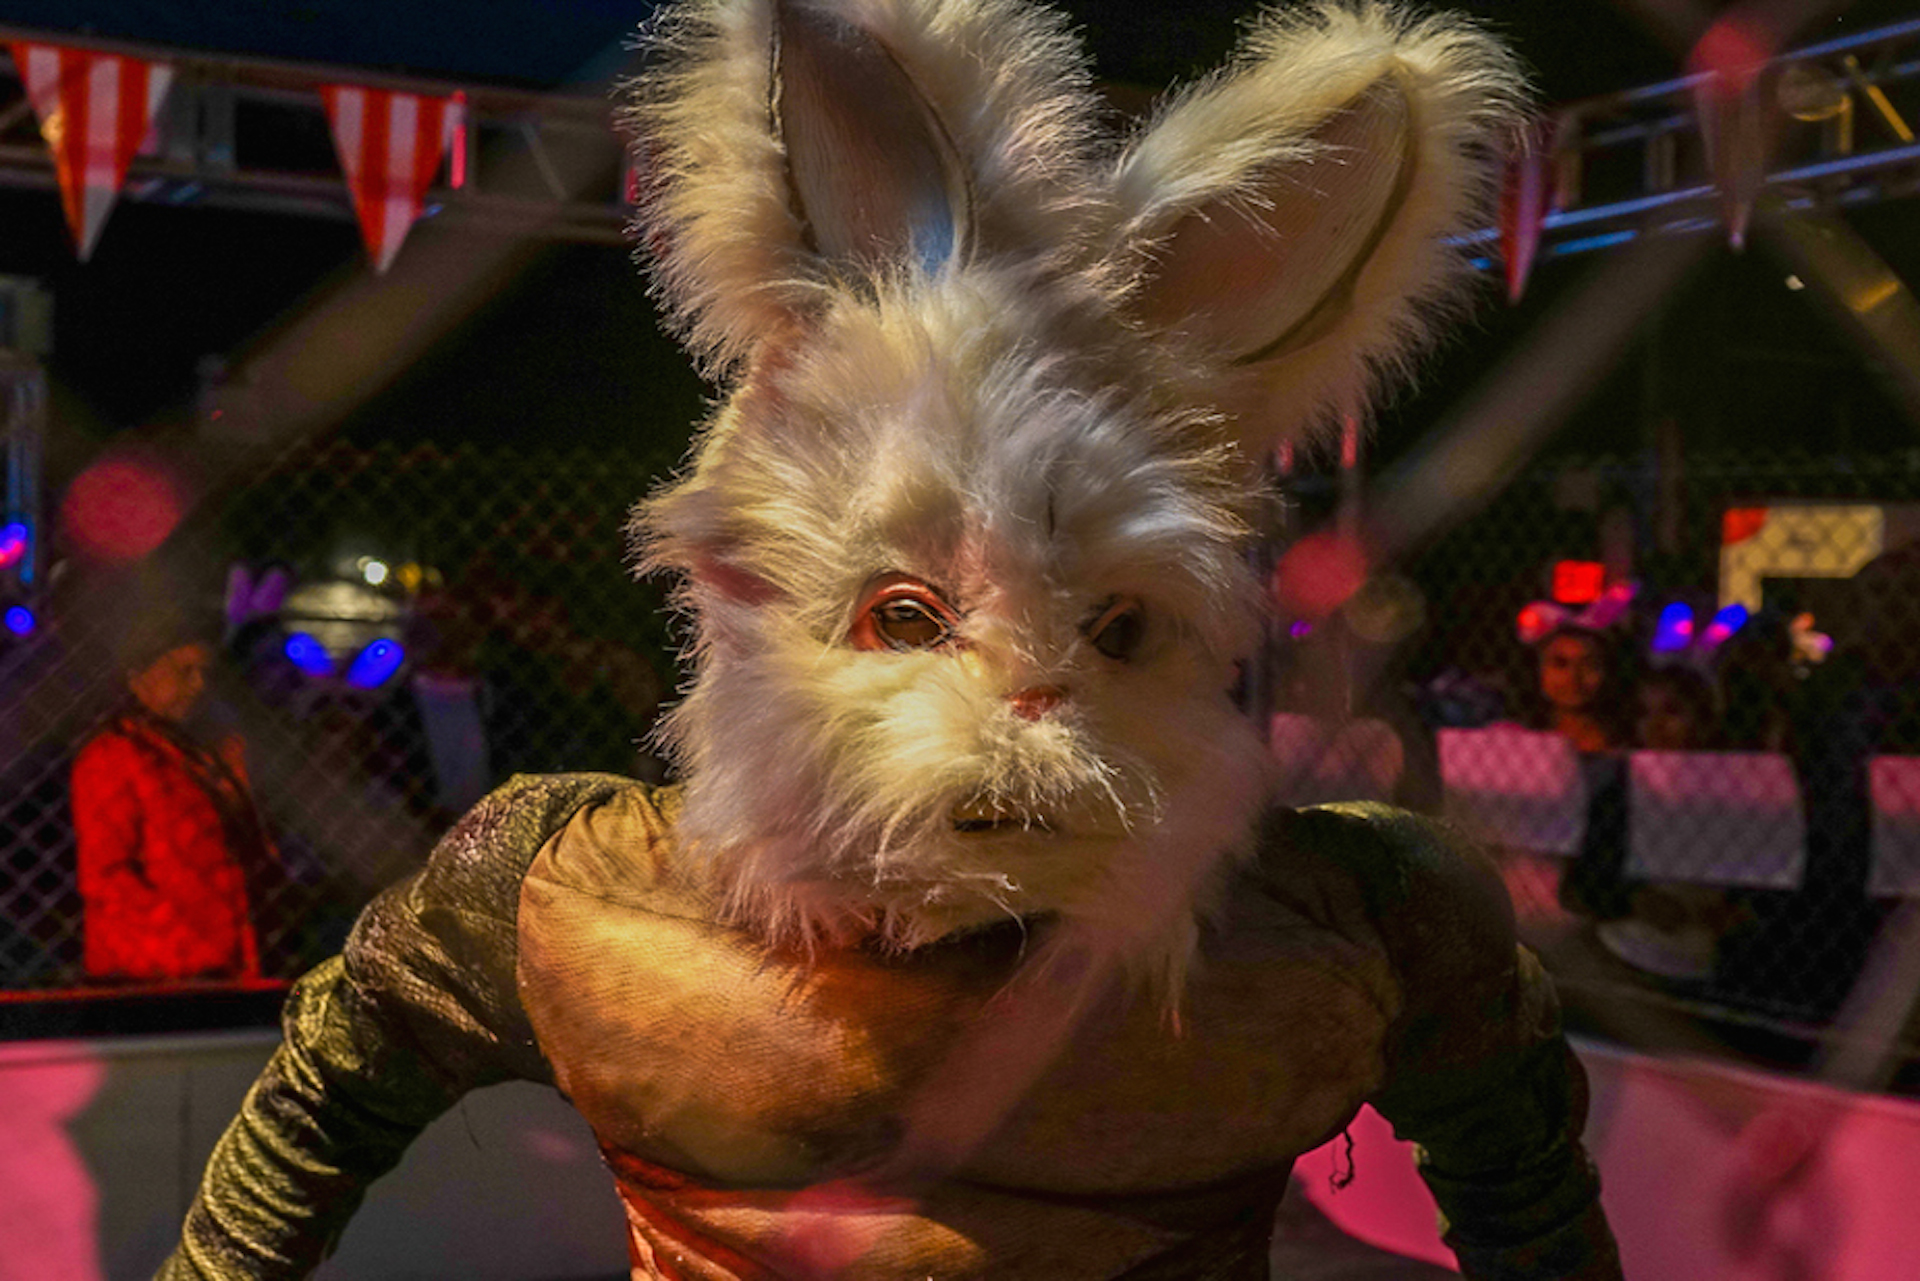 Full-Bunny-Contact-cage-match-photo-insult-peeps-nyc-easter-sunday-carnival-insane-costumes-creepy-egg-hunt-buddha-drinks-fanta-04956